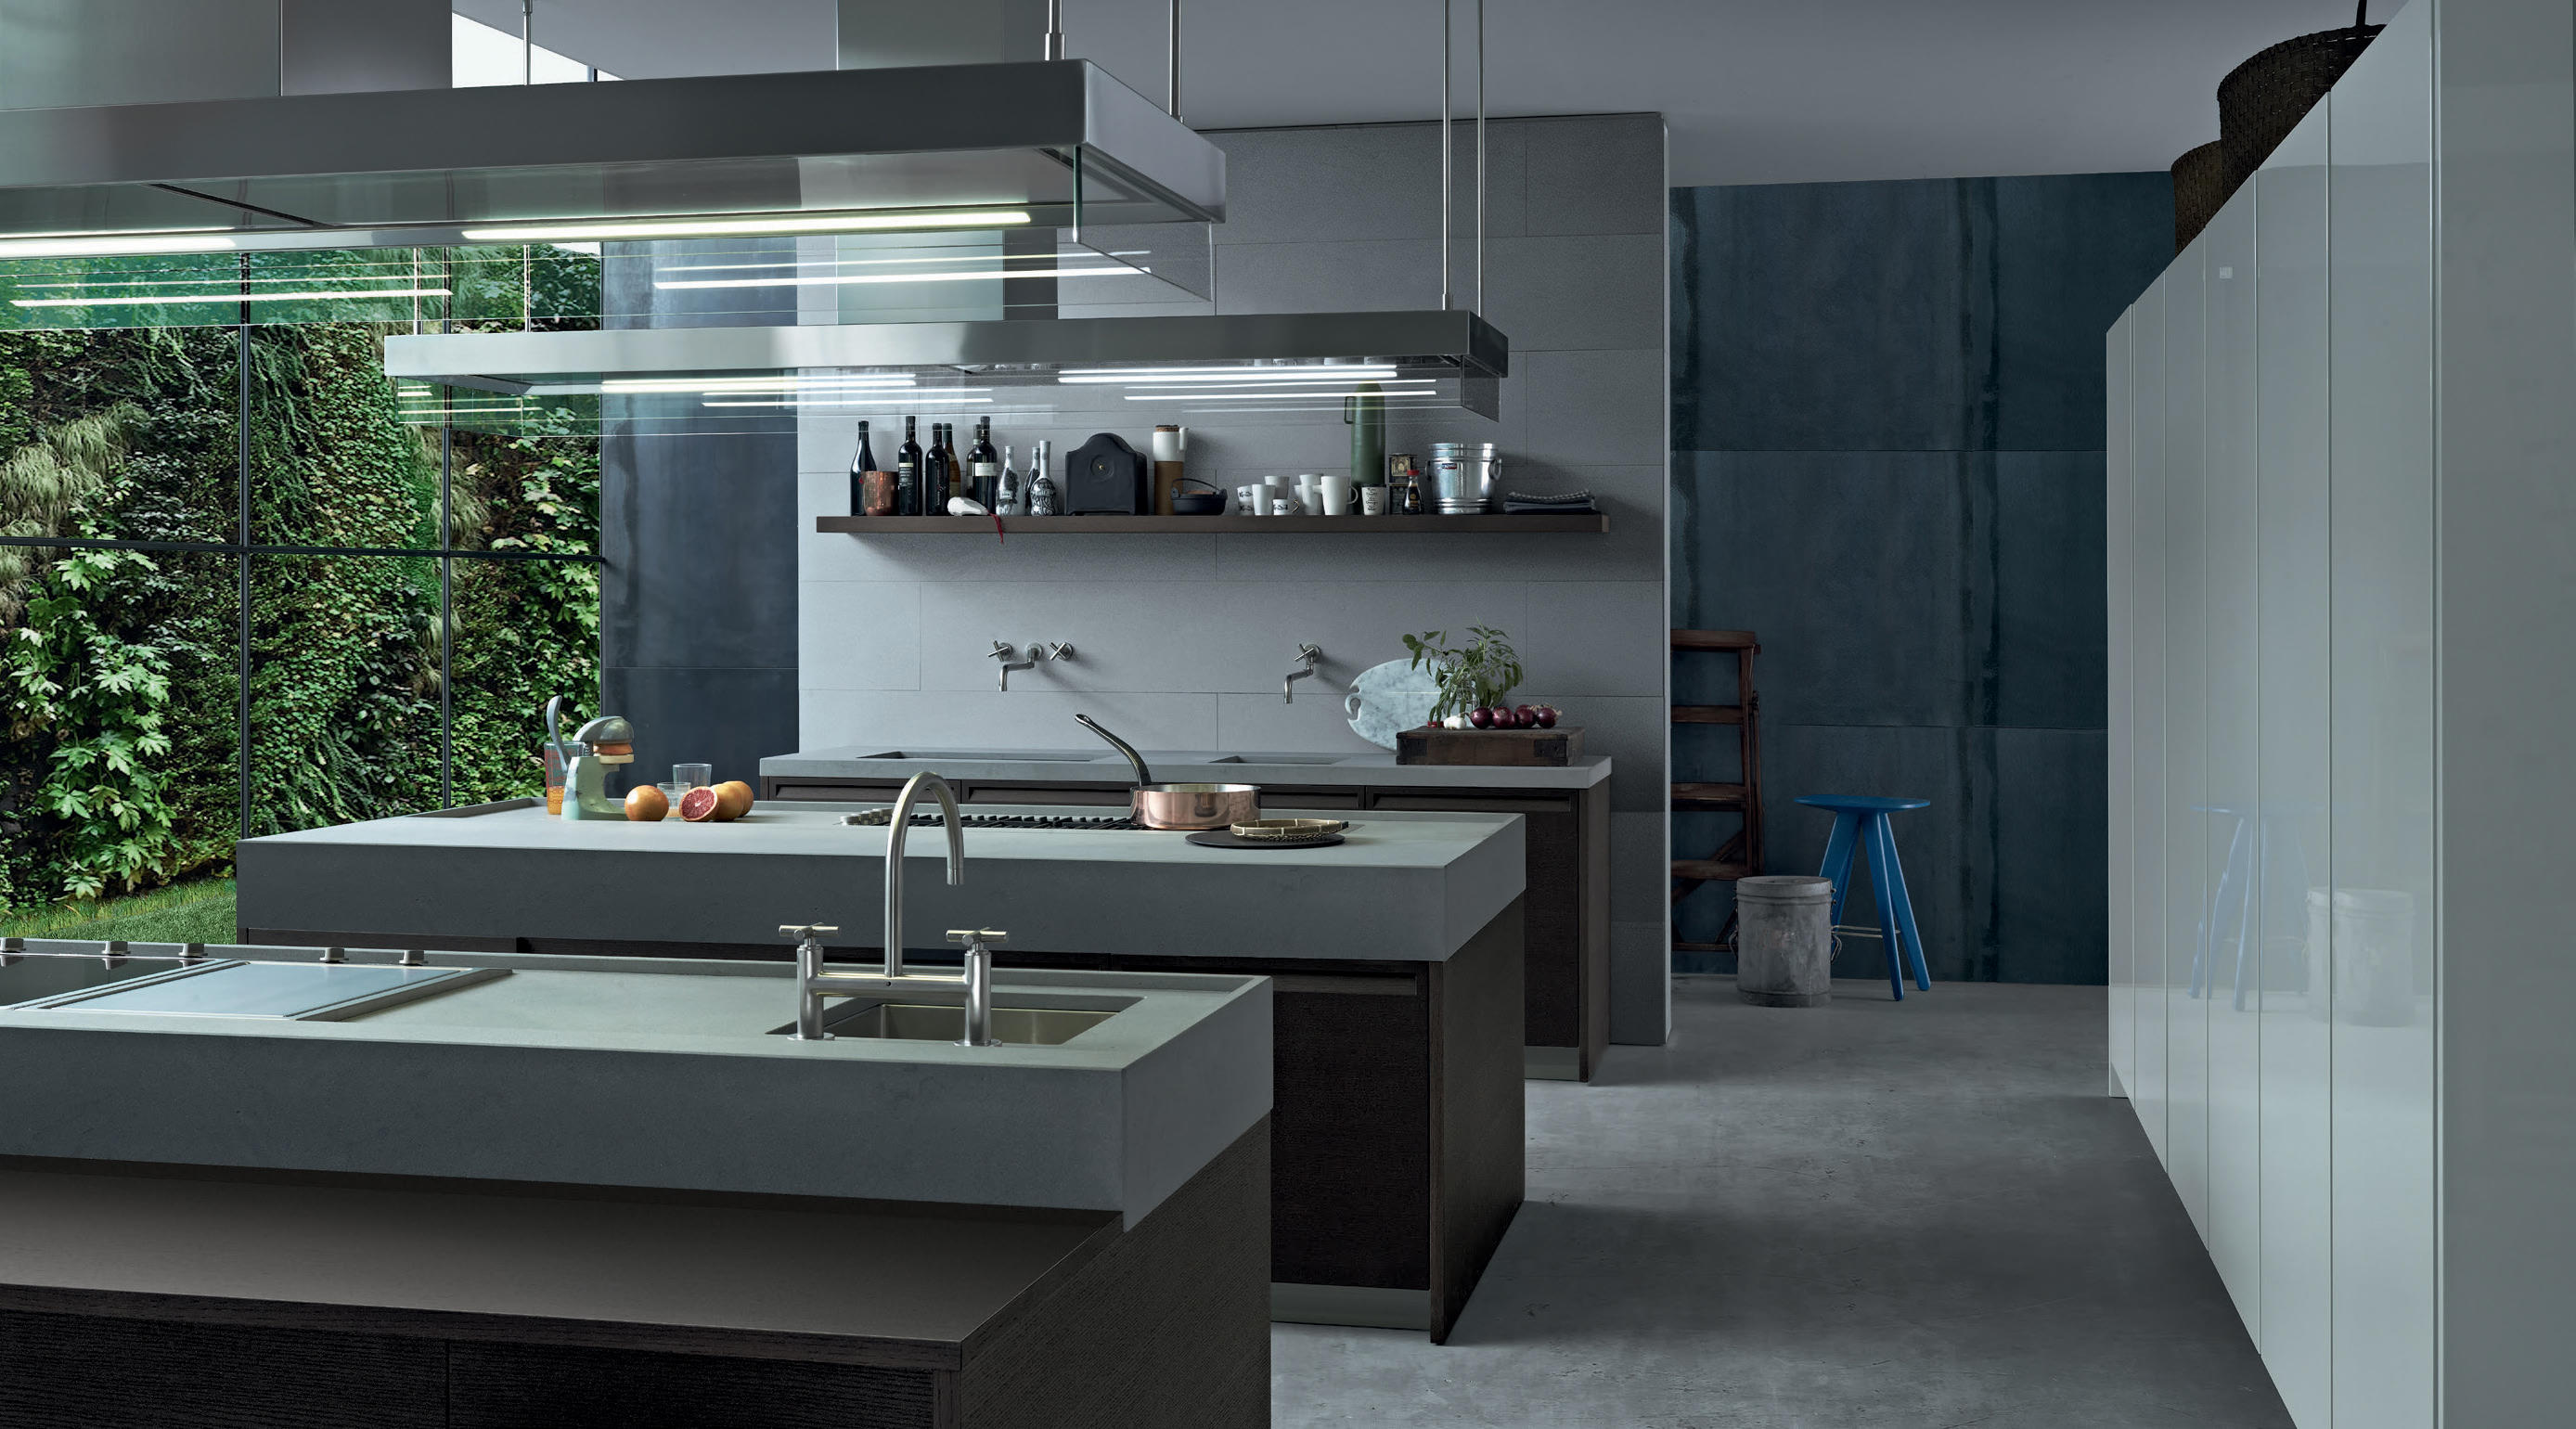 Minimal Island Kitchens From Varenna Poliform Architonic